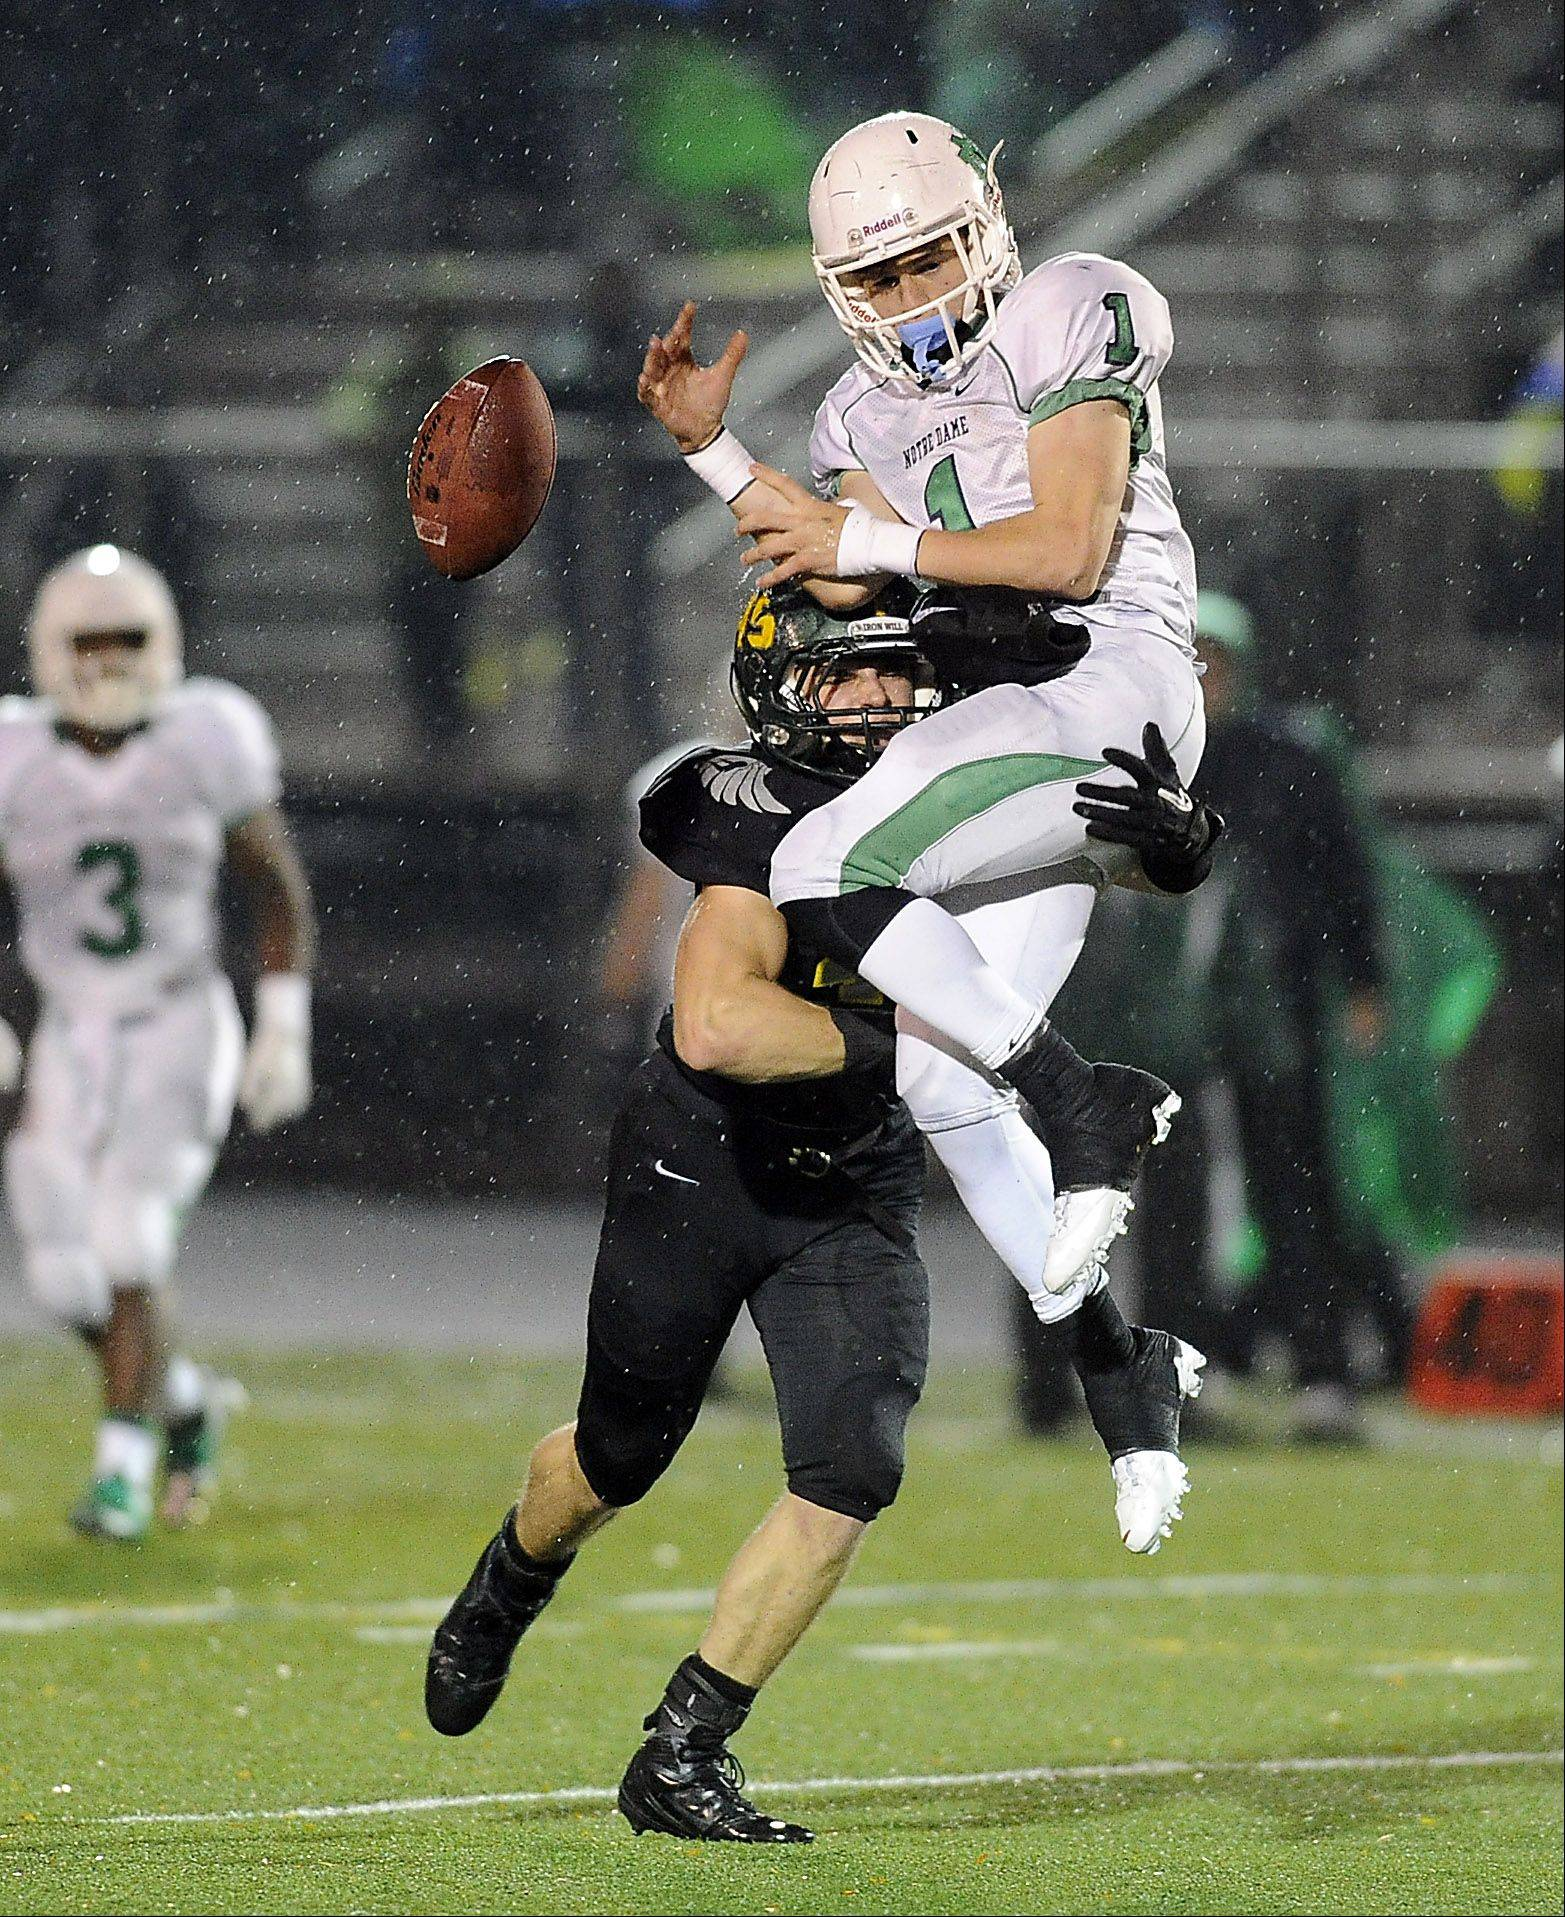 Fremd�s Stephen Walsh breaks up a pass play against Notre Dame�s Pat Cravens in the first half.